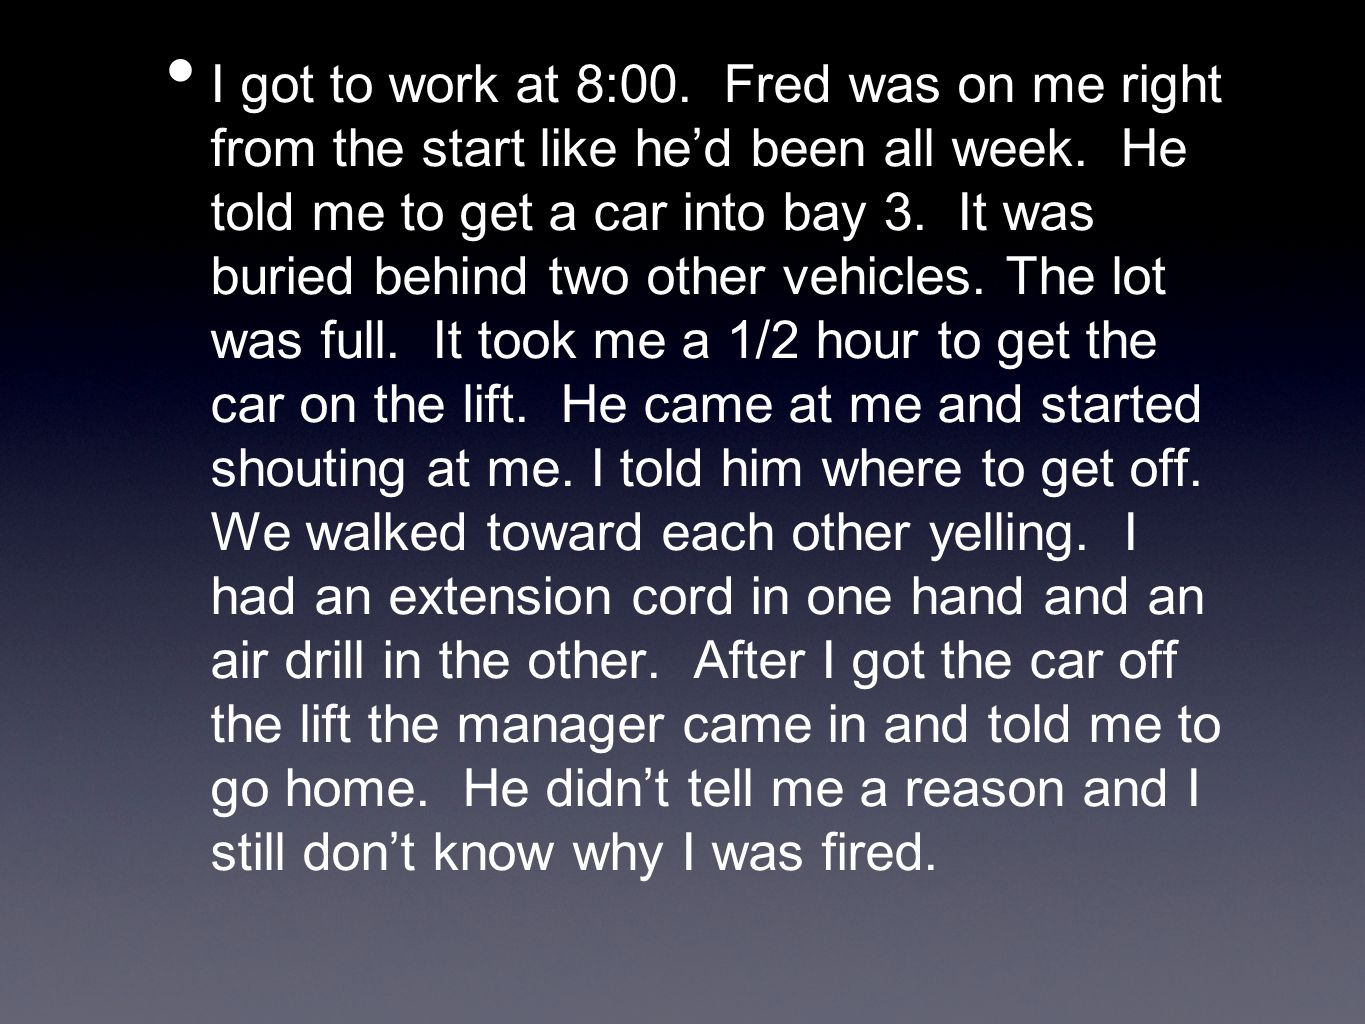 I got to work at 8:00. Fred was on me right from the start like he'd been all week.